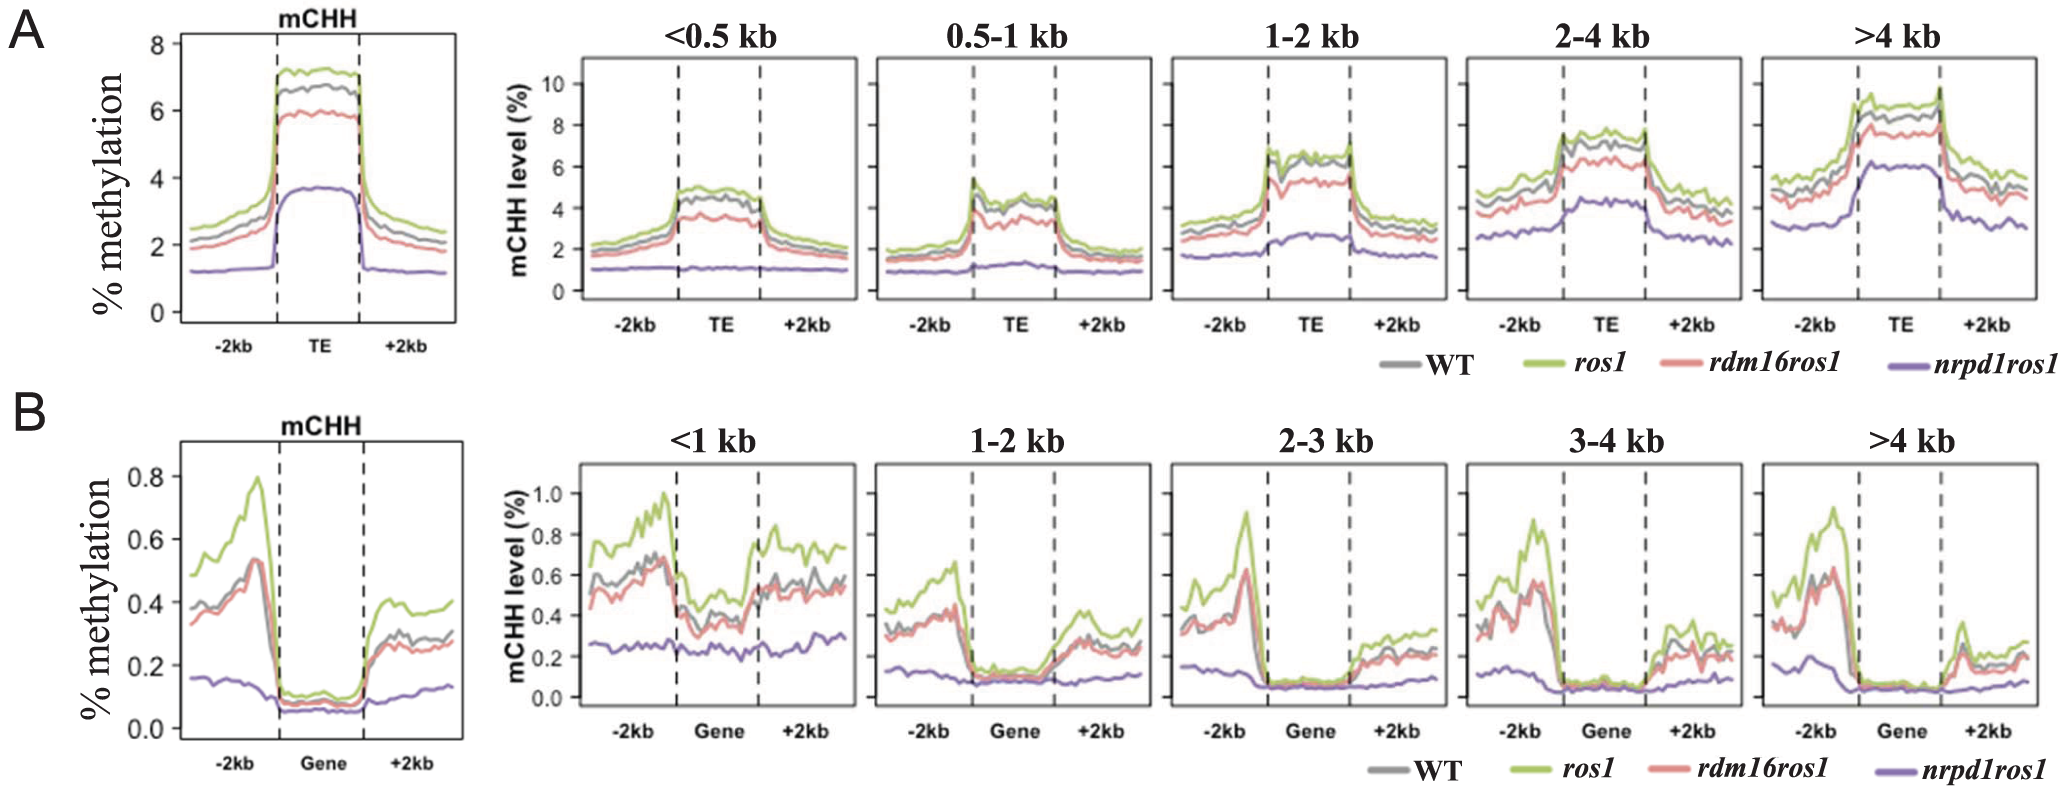 Average CHH methylation levels in transposable elements (TEs) (A) and genes (B).